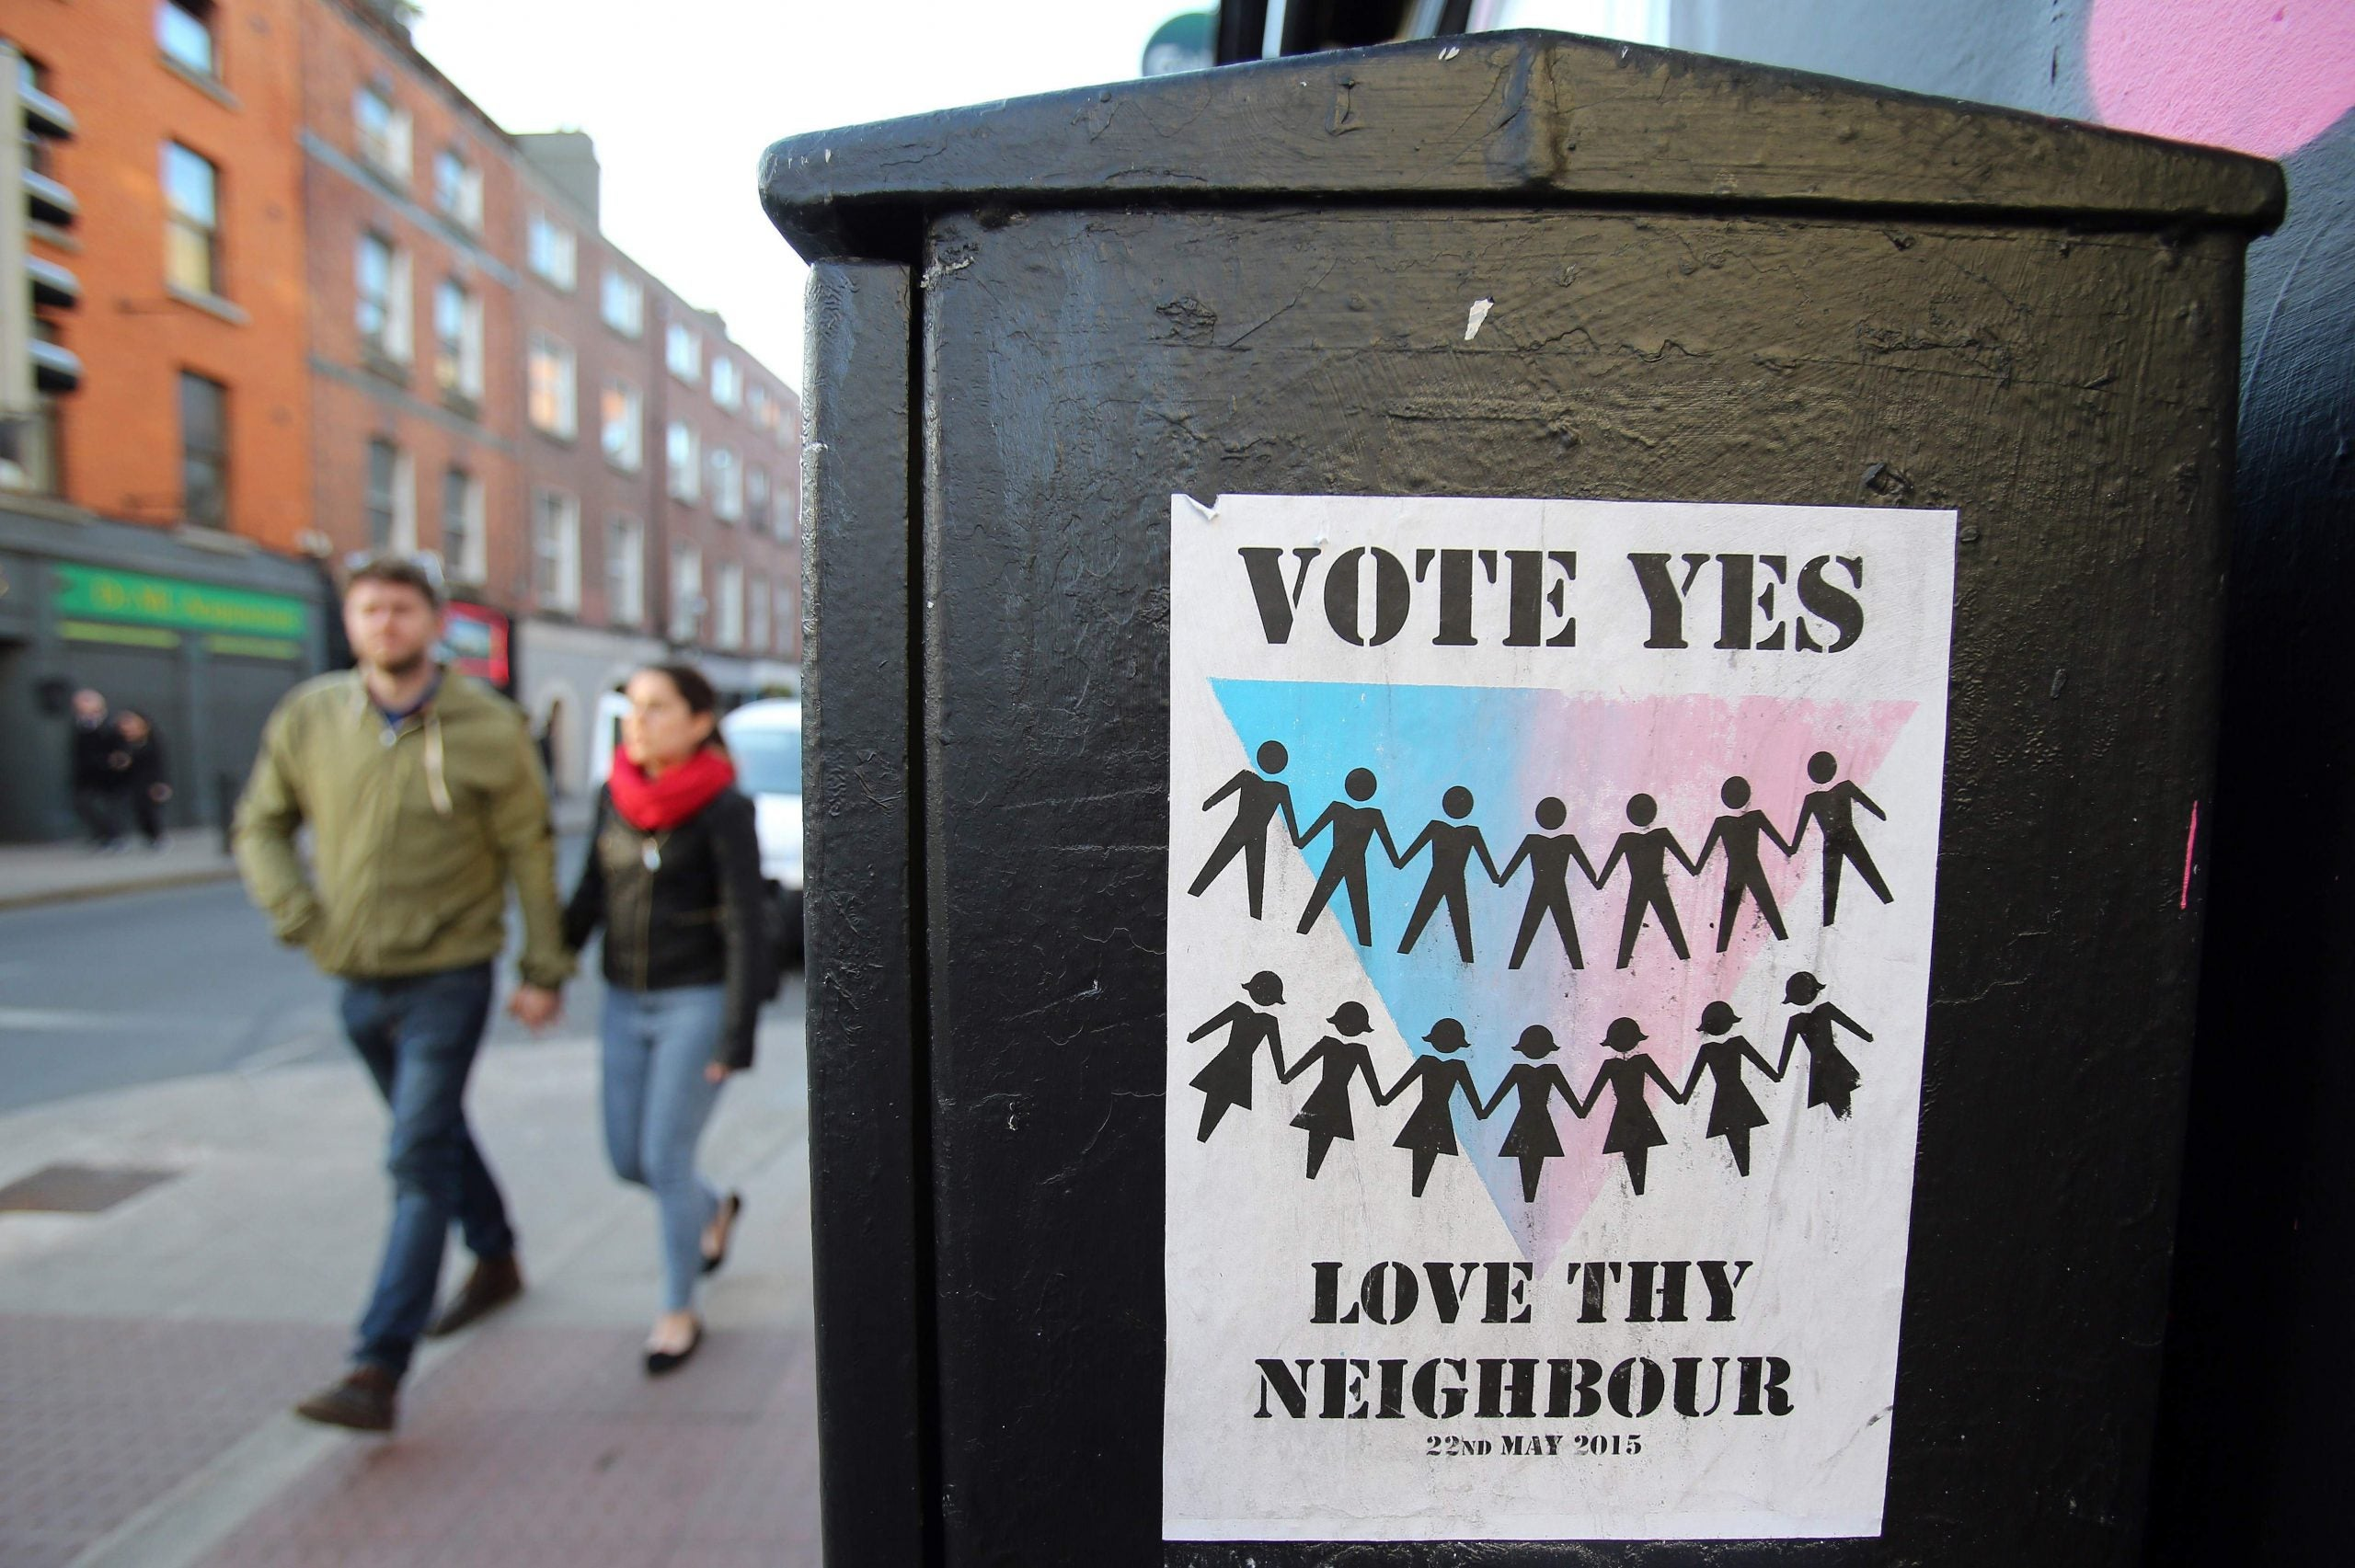 Will Ireland make history and vote for same sex marriage?